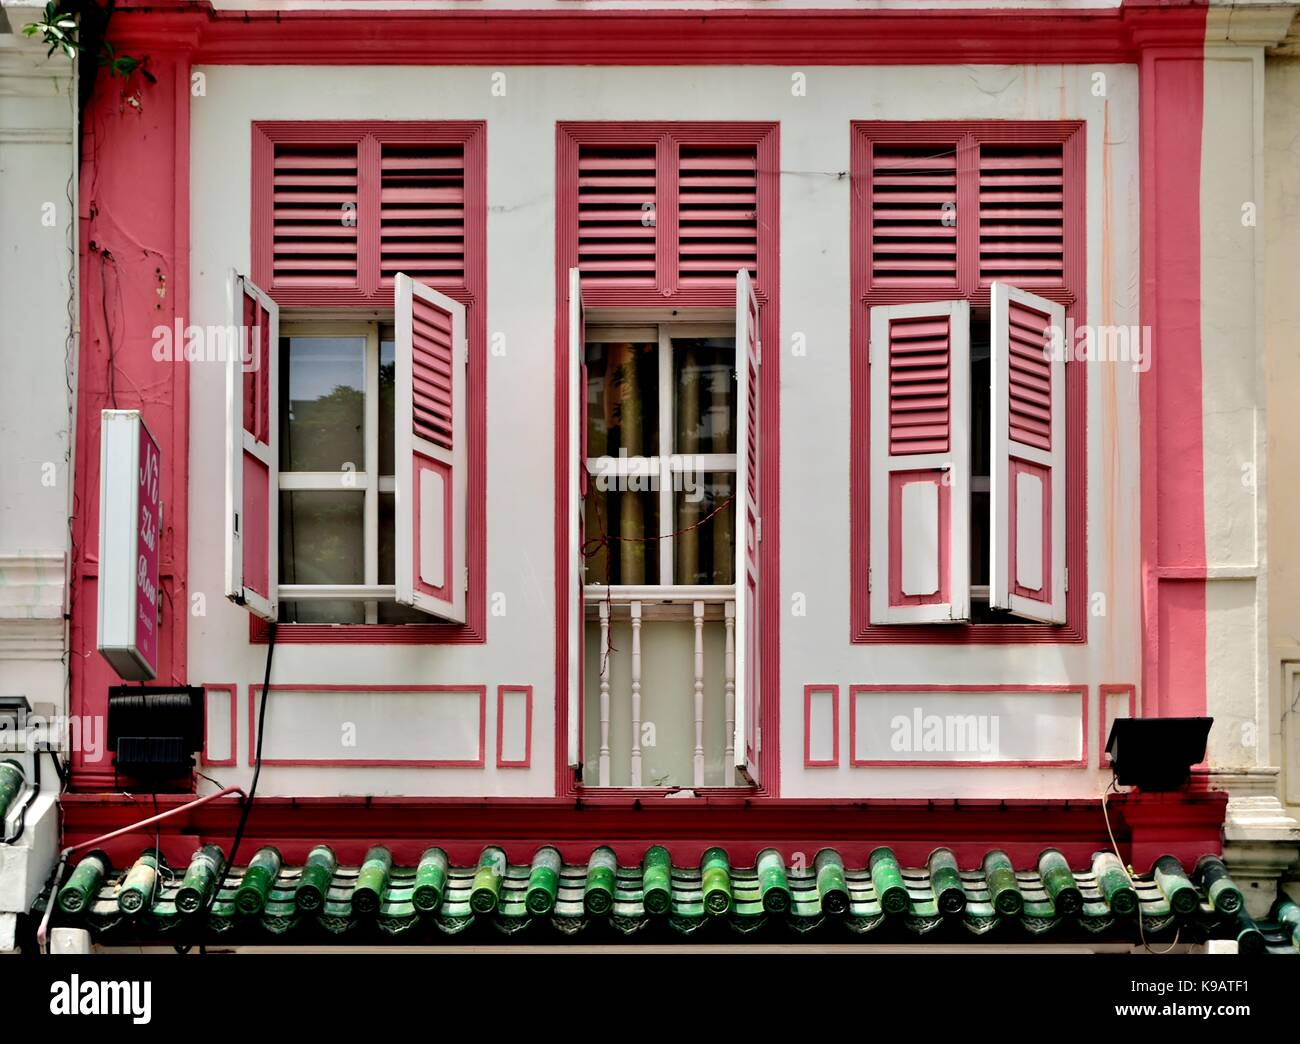 Red And White Shutters Imágenes De Stock & Red And White Shutters ...